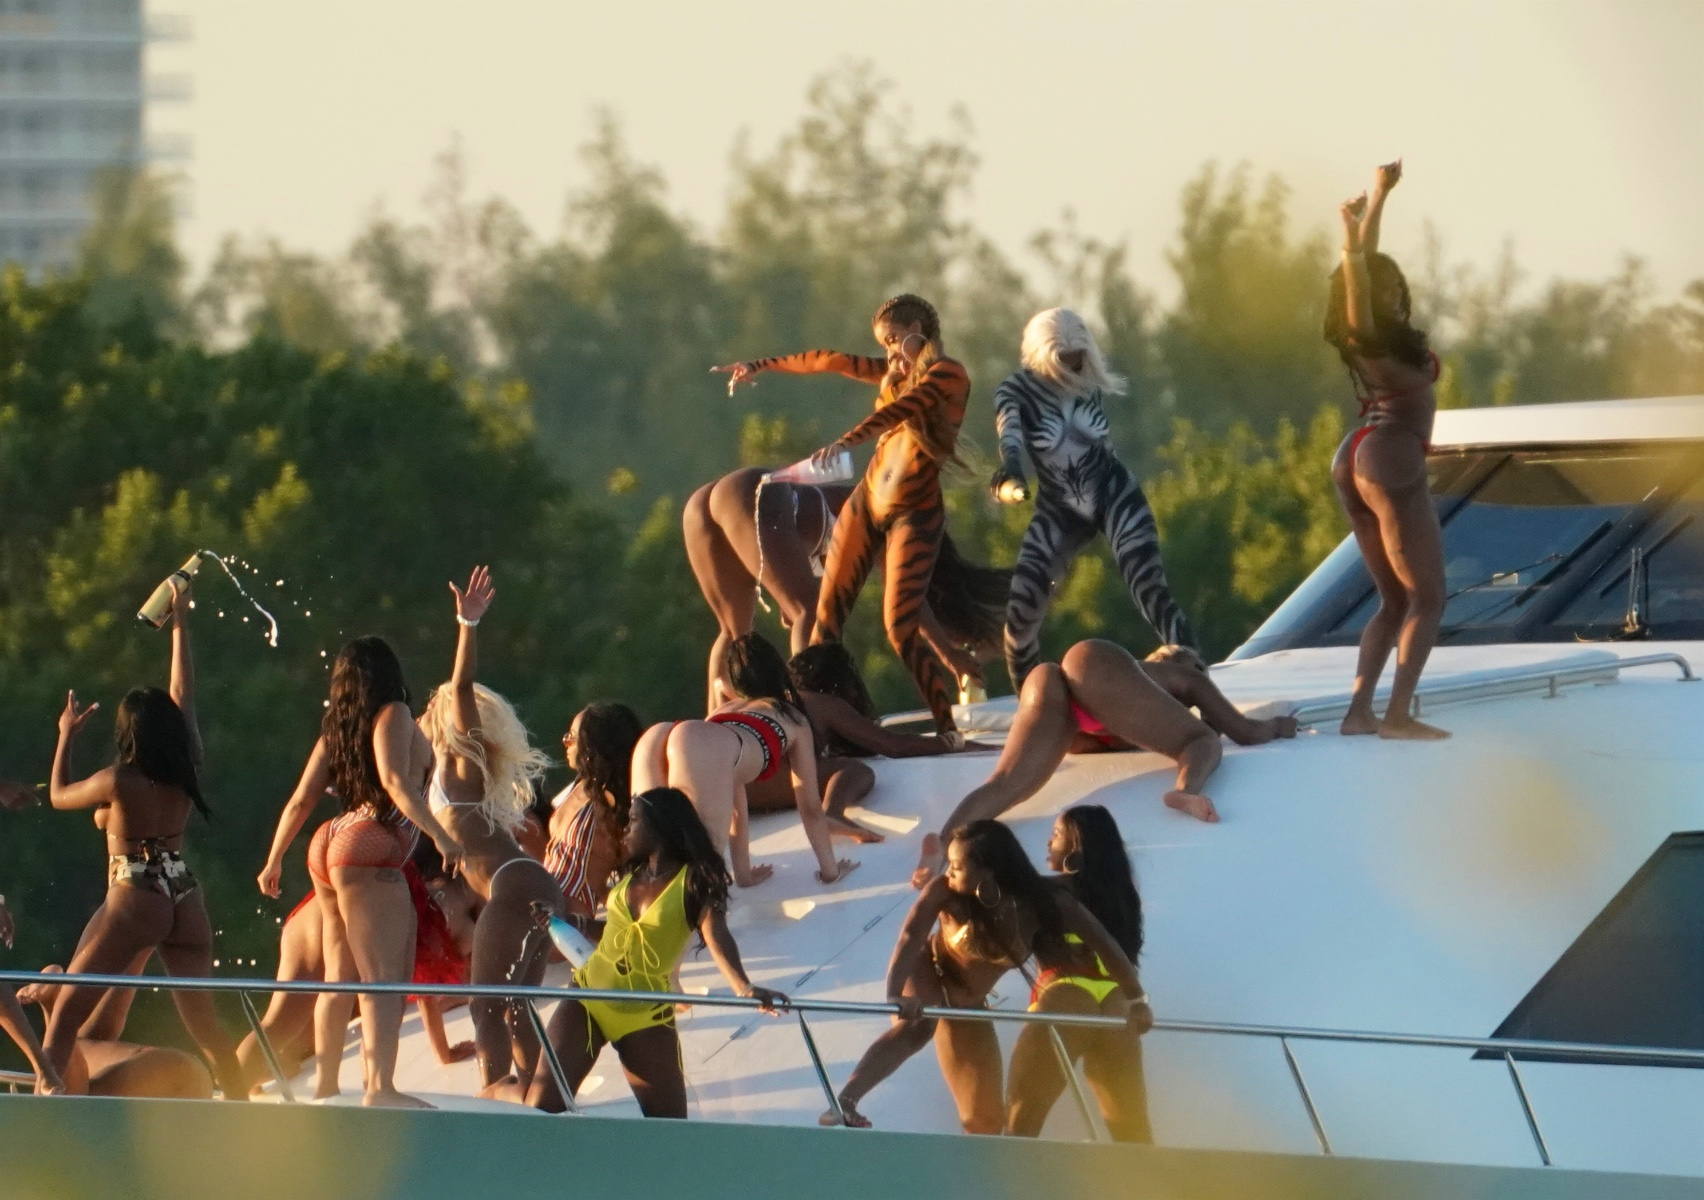 body-painted-cardi-b-goes-wild-on-yacht-as-she-films-video-while-splashing-champagne-3